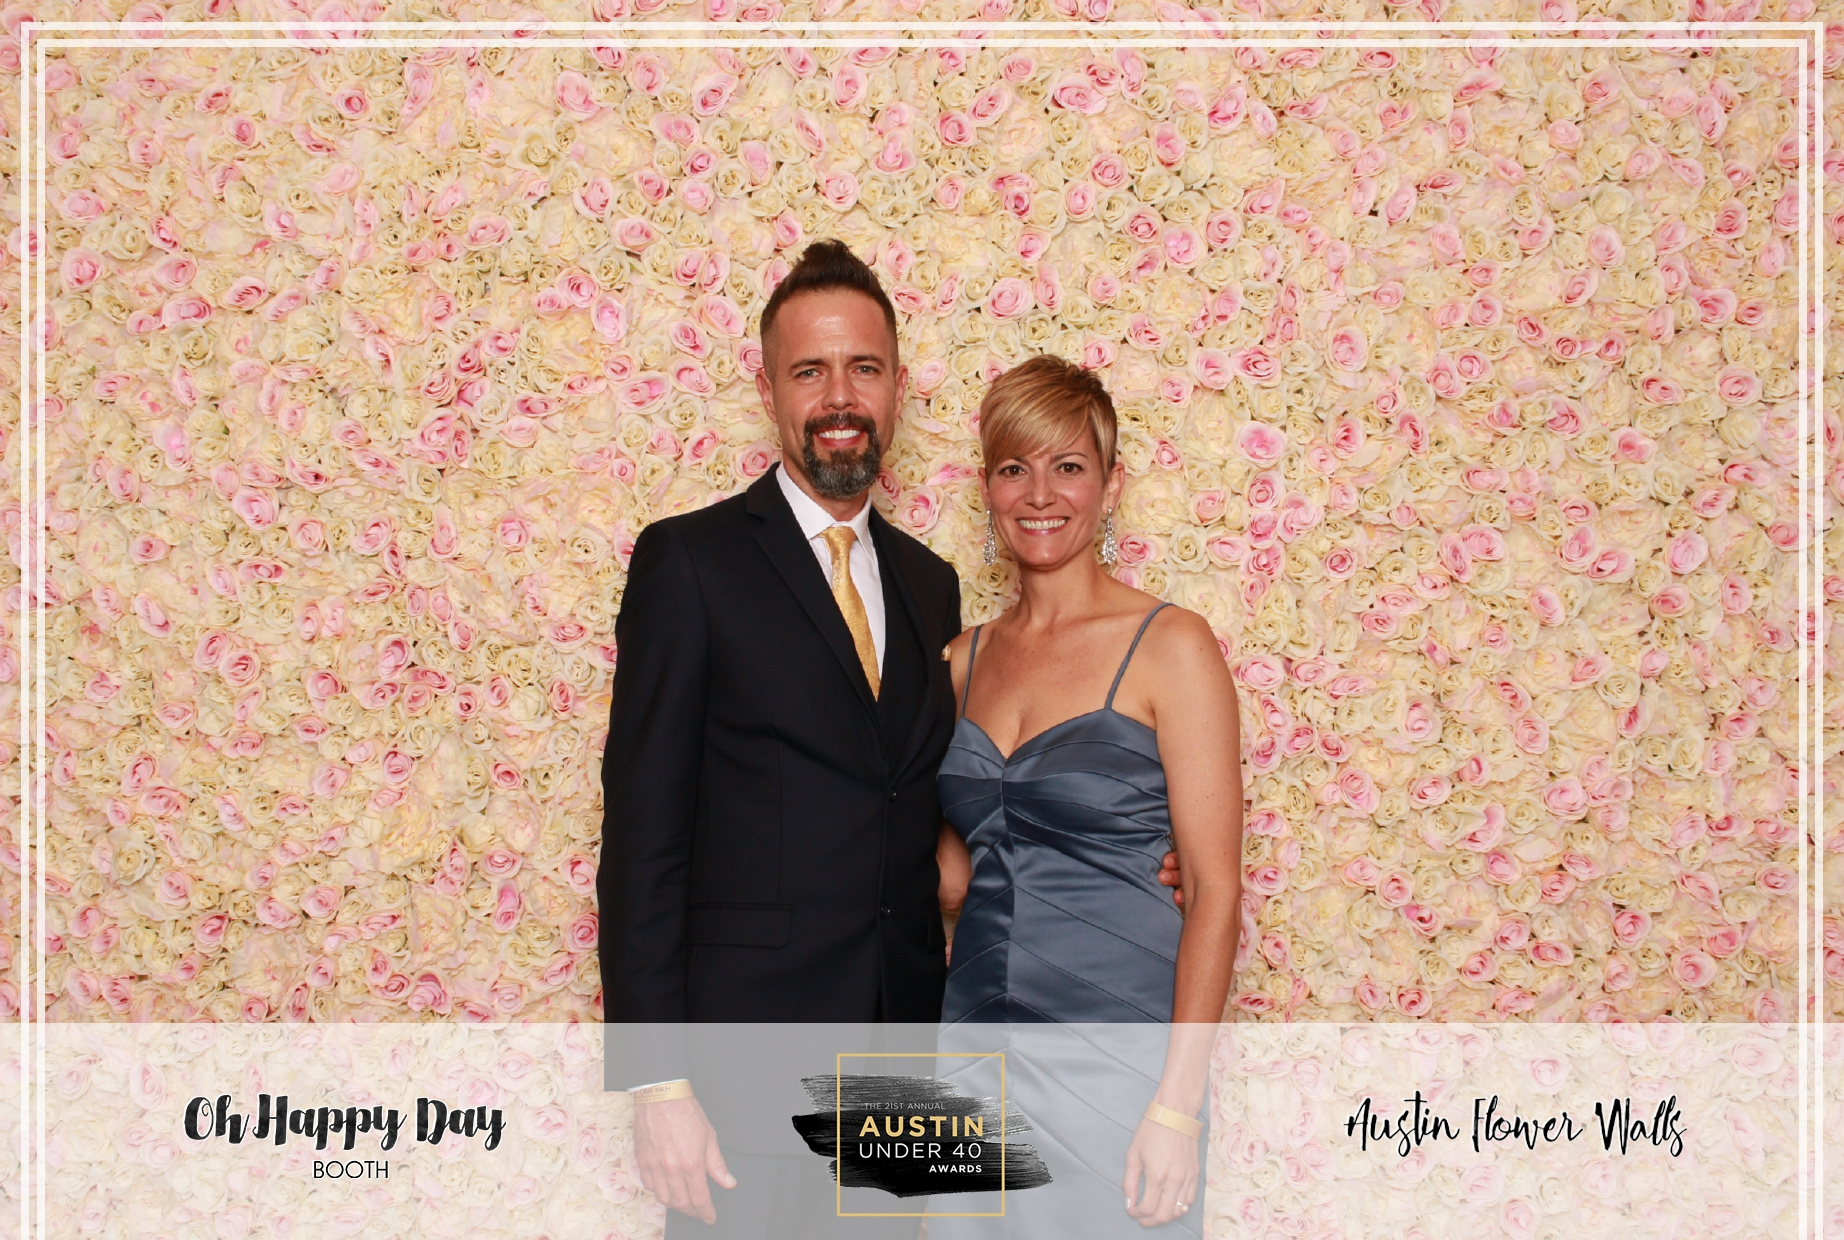 Oh Happy Day Booth - Austin Under 40-87.jpg